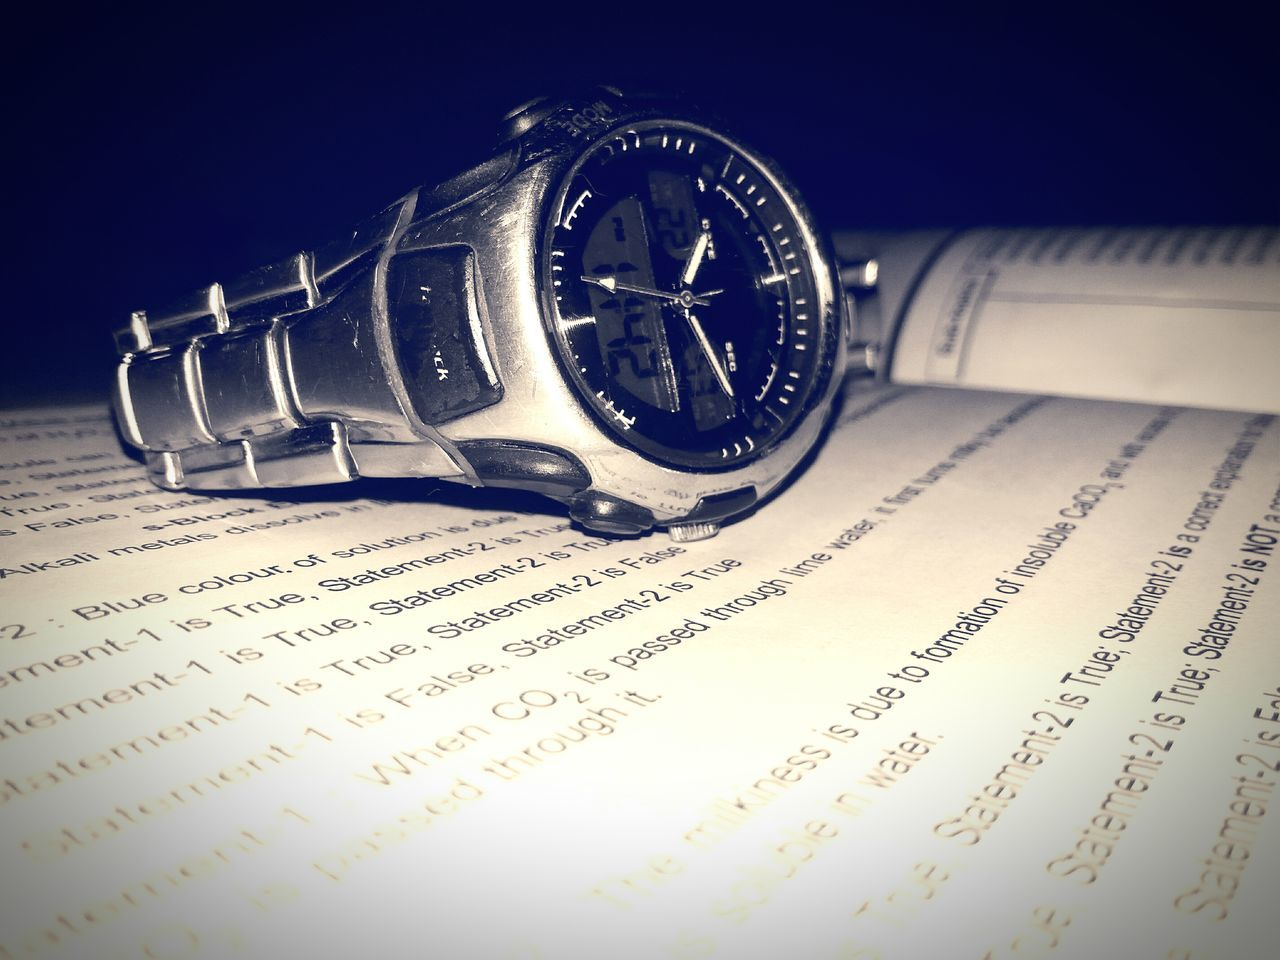 TIME STANDS STILL... Minute Hand No People Newspaper Text Information Medium Communication Watch Wrist Watch Night Study Time Studying For Exams :-( Close-up Studying Hard